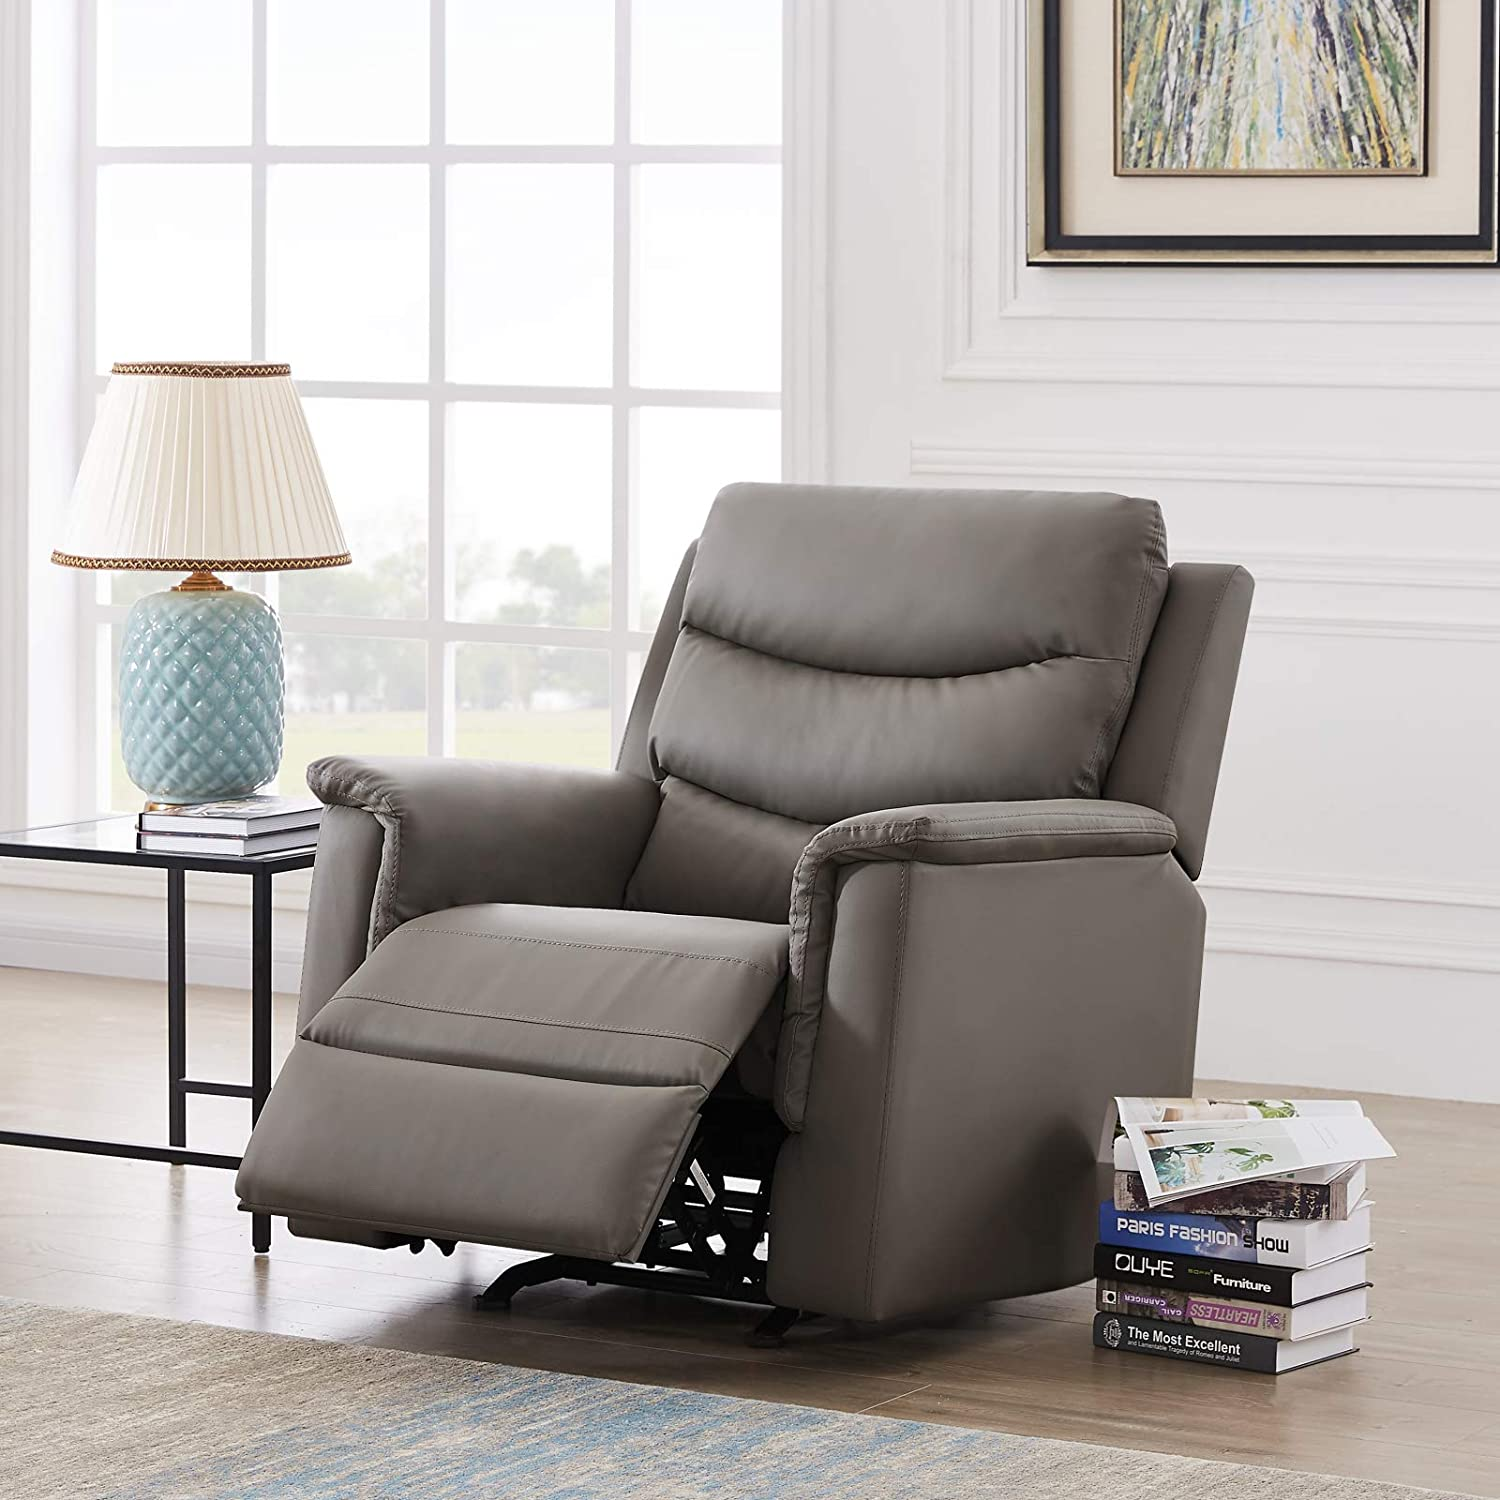 Pannow Double Recliner Loveseat with Console Slate, Double Reclining Sofa with Cup Holder, 2-Seater with Flipped Middle BACKREST Black PU, Theater Seating Furniture Sofa Bed, Gray PU (Grey, 1 Seater)